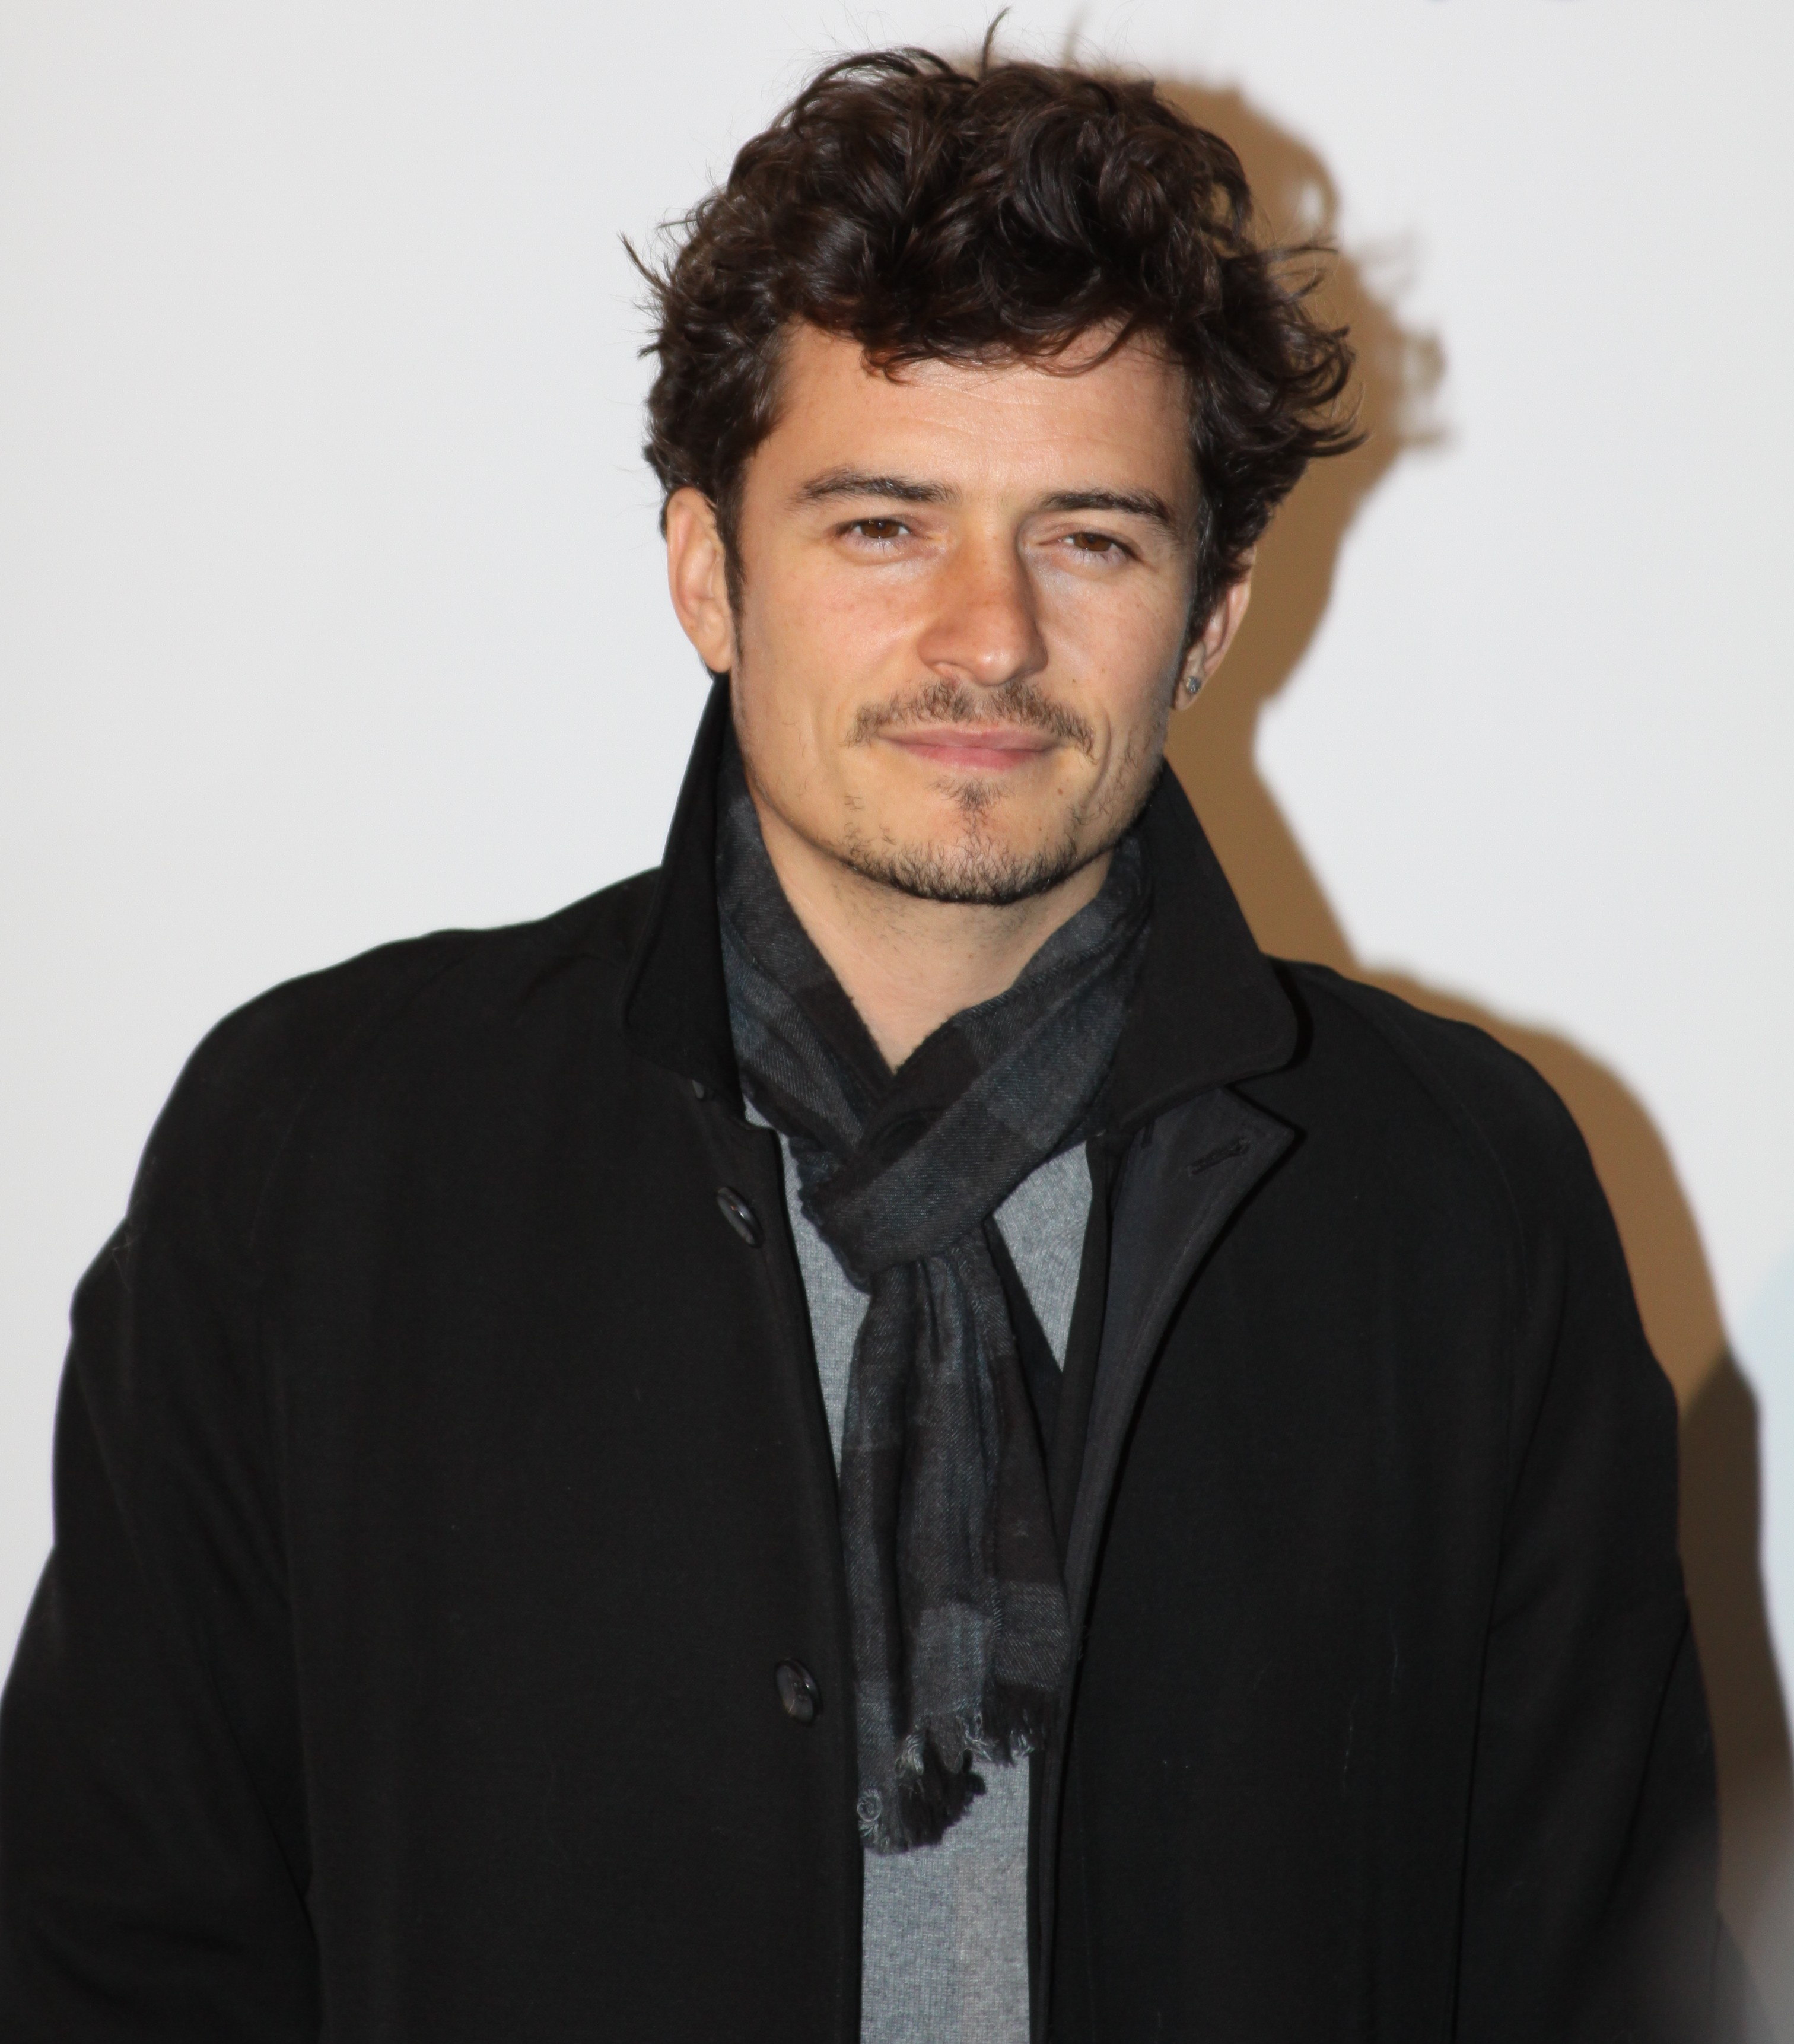 orlando bloom comes from canterbury